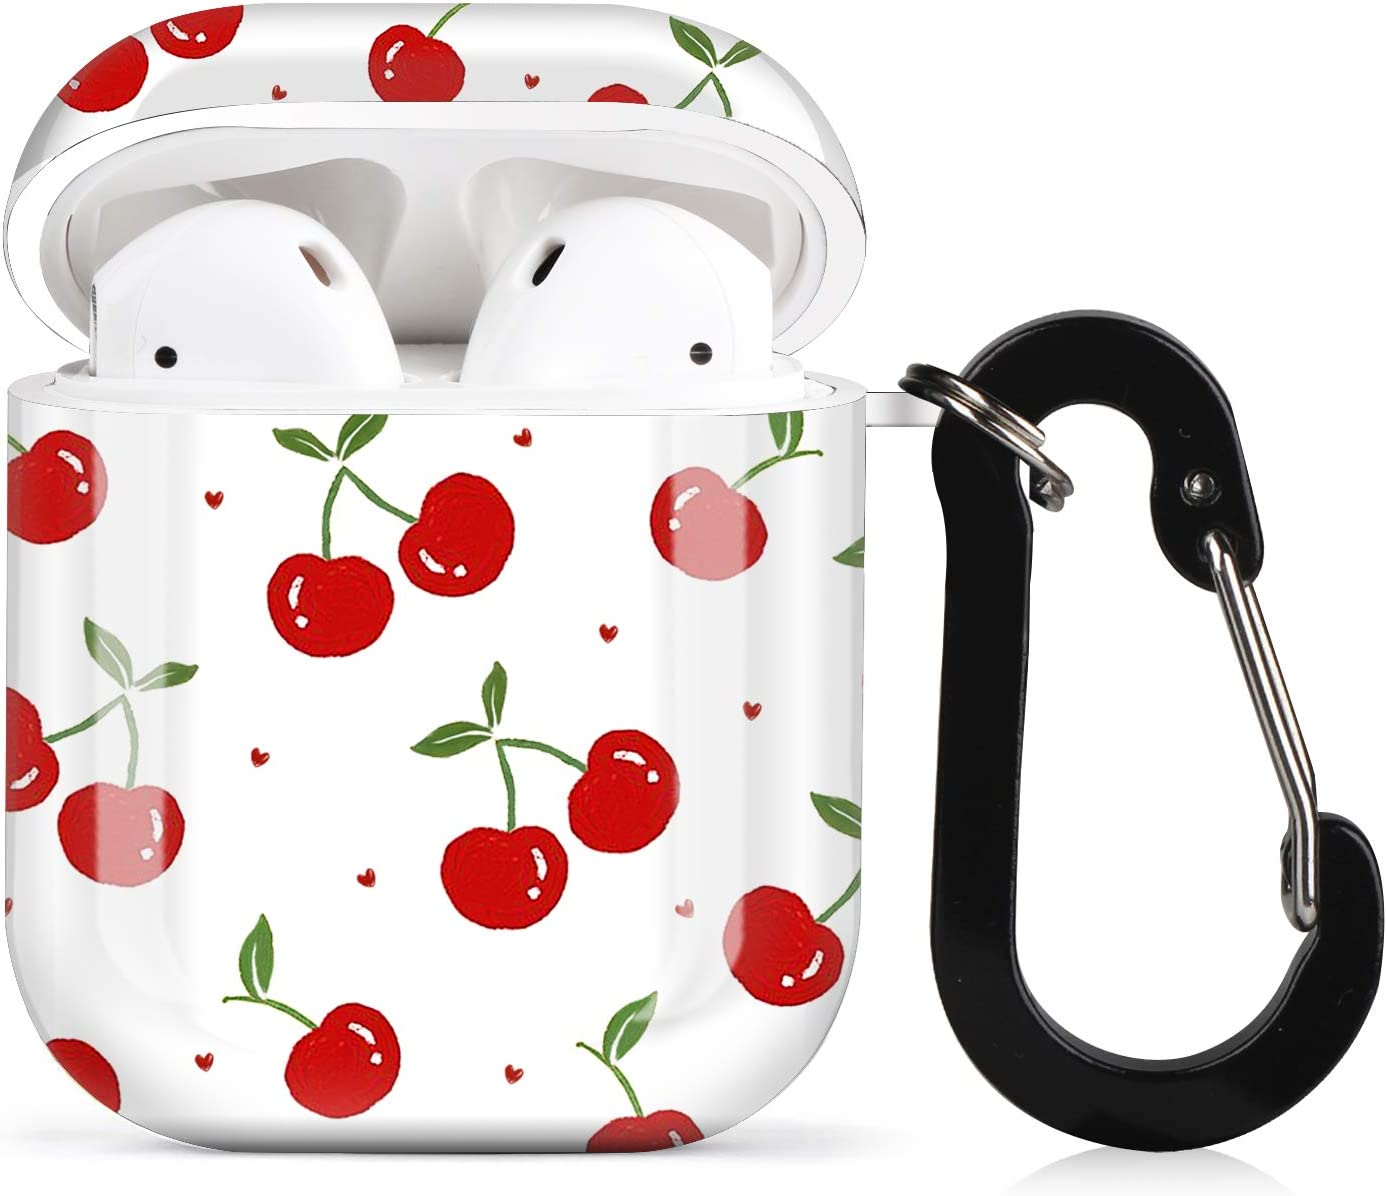 Lapac AirPods Case Cherry Cute Airpod Cover Skin Vintage Cherry for Girl Women Accessories Protective Hard Case with Keychain Anti Lost for Wireless AirPod 1&2 Charging Cartoon Summer Sweet Red Fruit